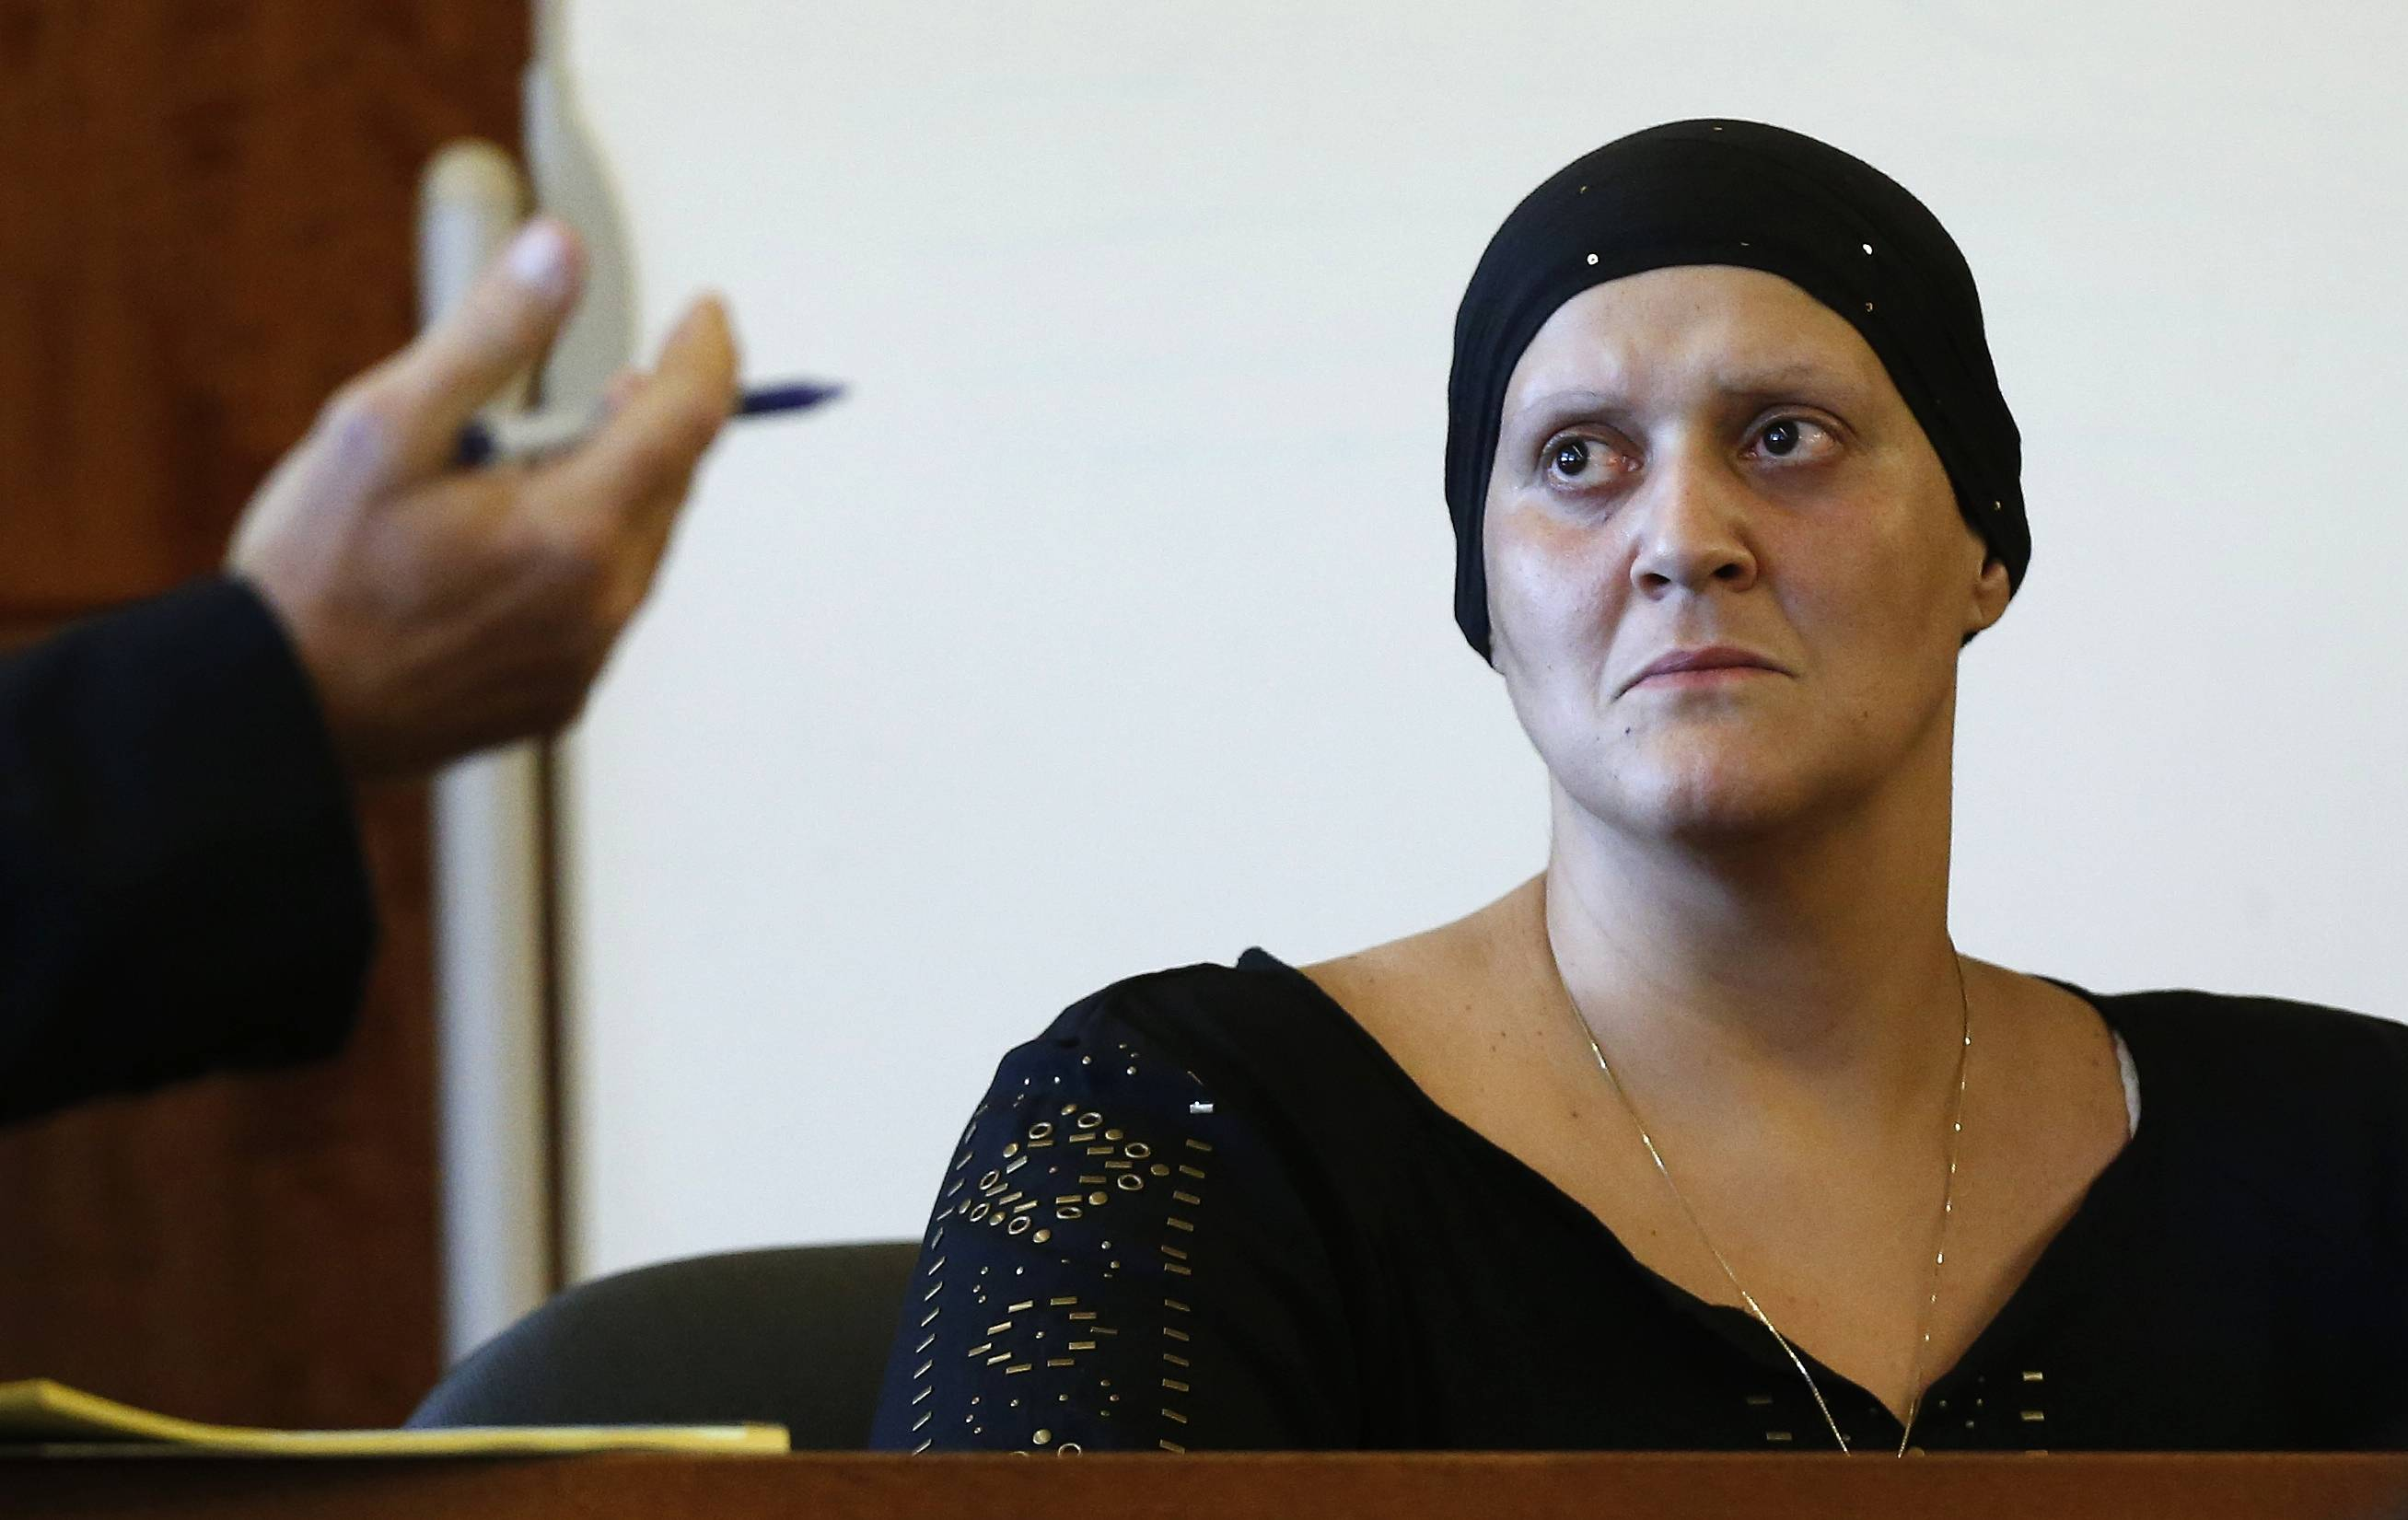 Tanya Singleton, a cousin of former New England Patriots football player Aaron Hernandez, pleaded guilty to criminal contempt in connection with the investigation of murder charges against Hernandez. She was spared jail time only because of her advanced cancer, a judge said Tuesday in sentencing her to two years of probation.